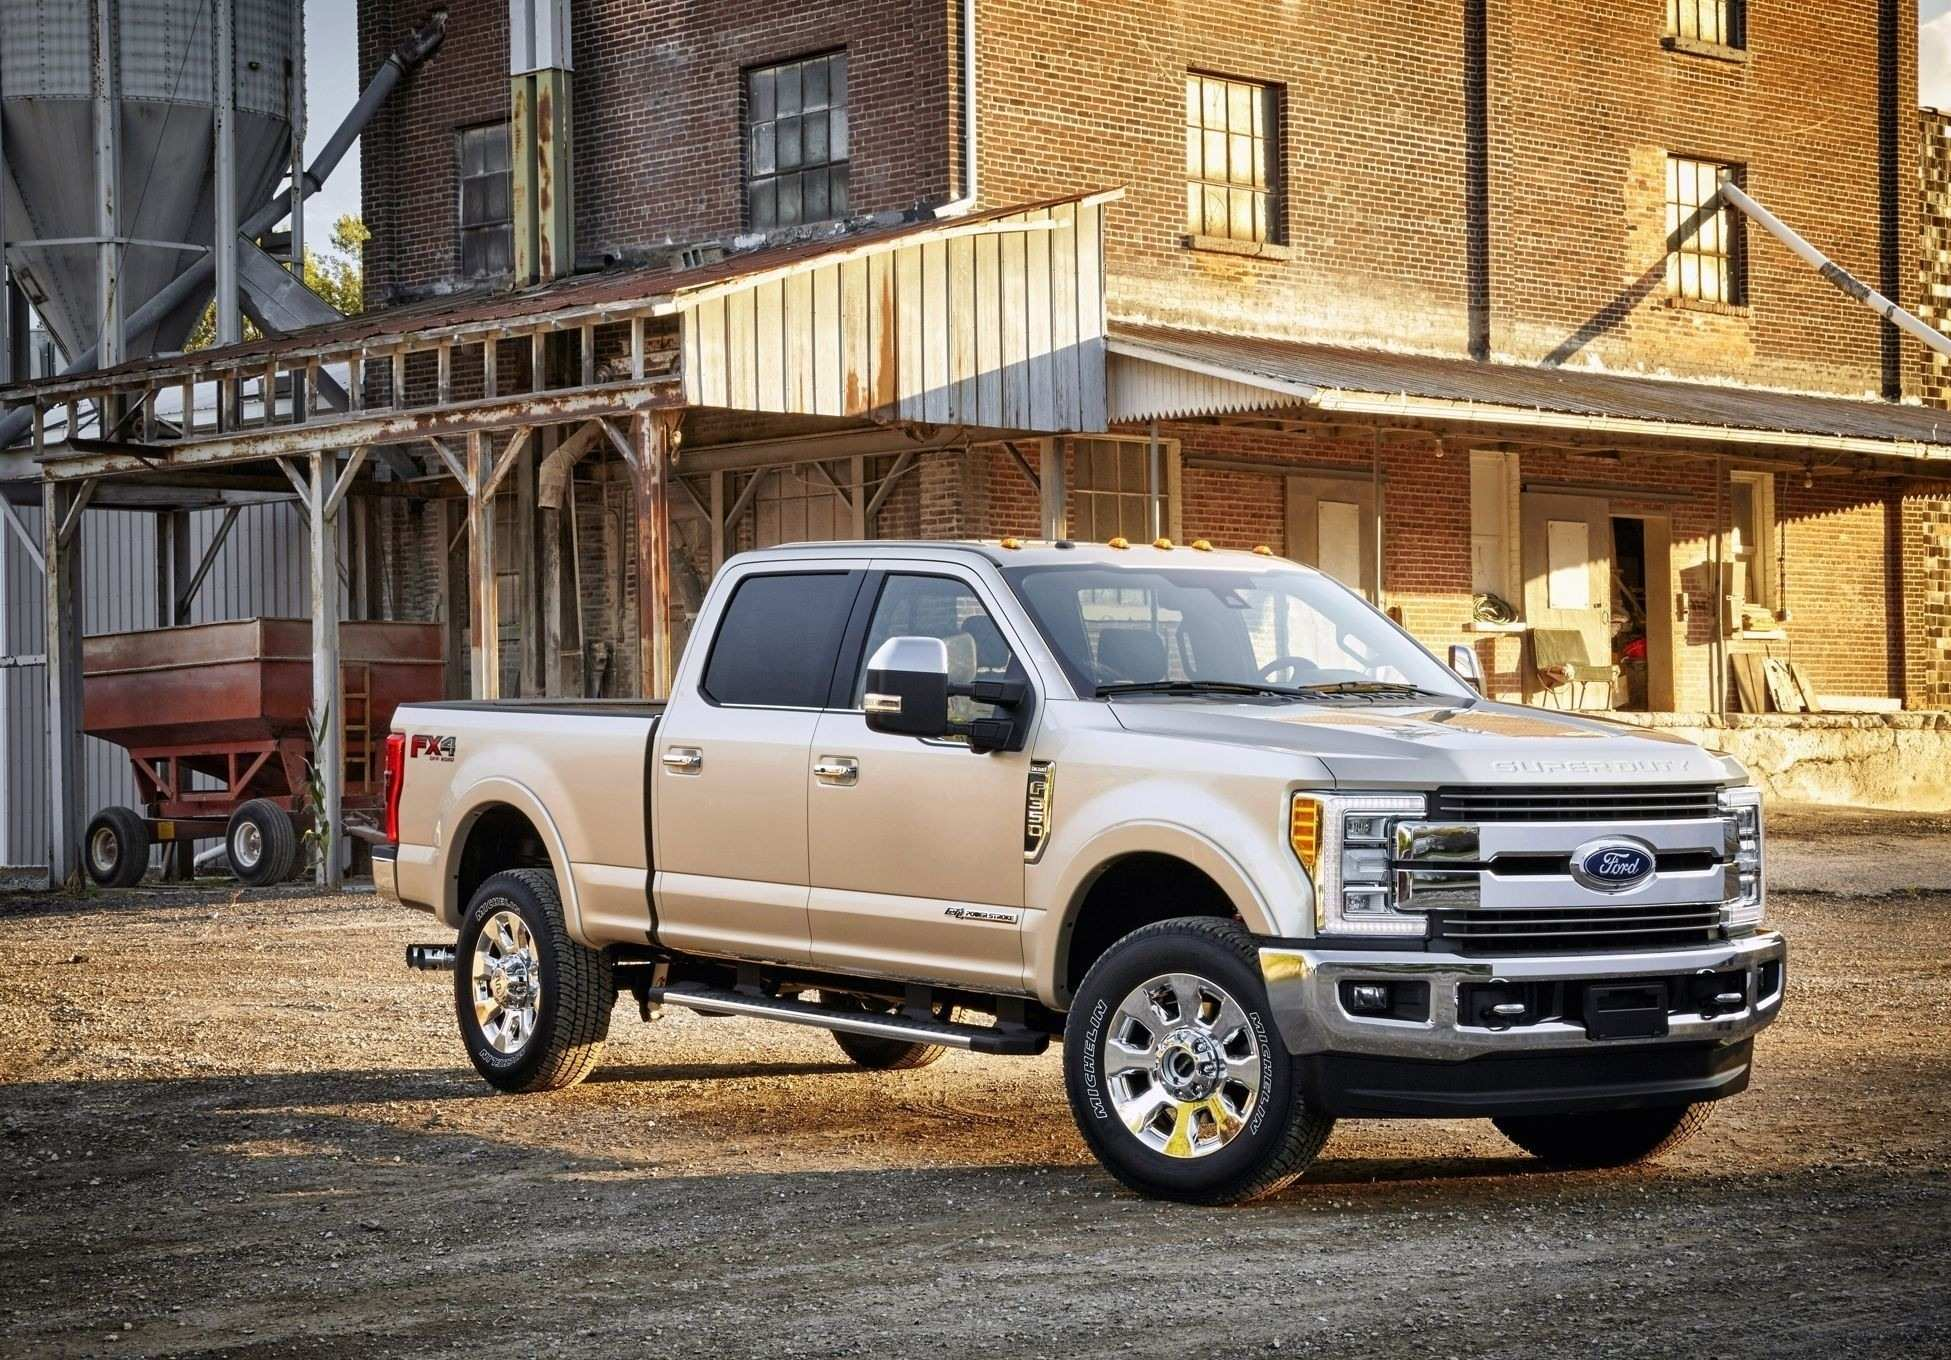 78 All New 2020 Ford F250 Diesel Rumored Announced Release Date And Concept